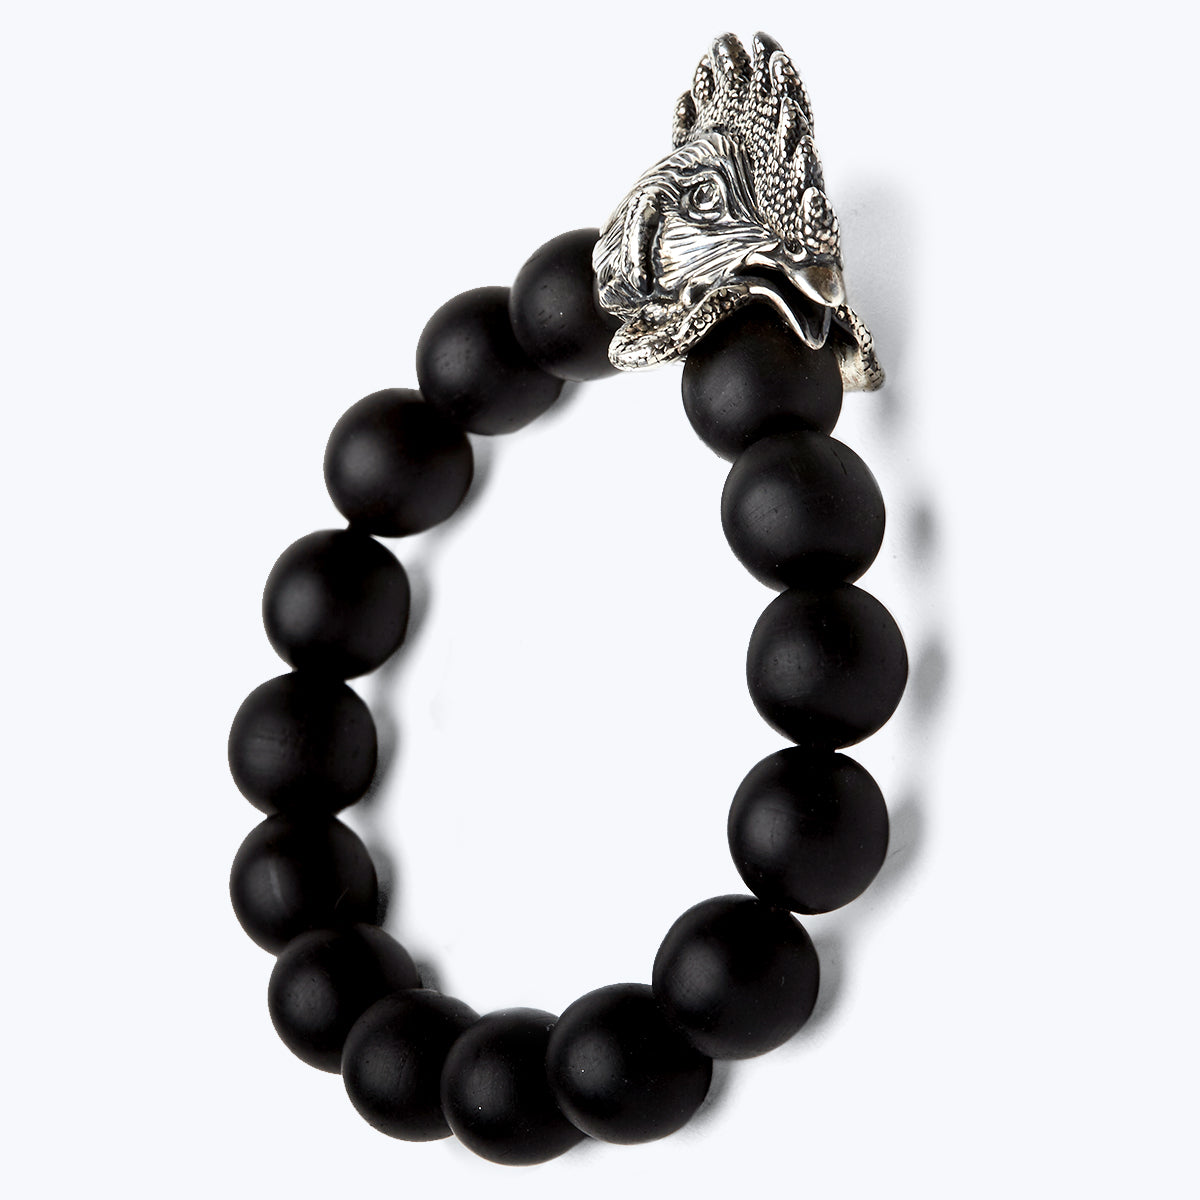 Mala Beads Bracelet with Horoscope - Rooster